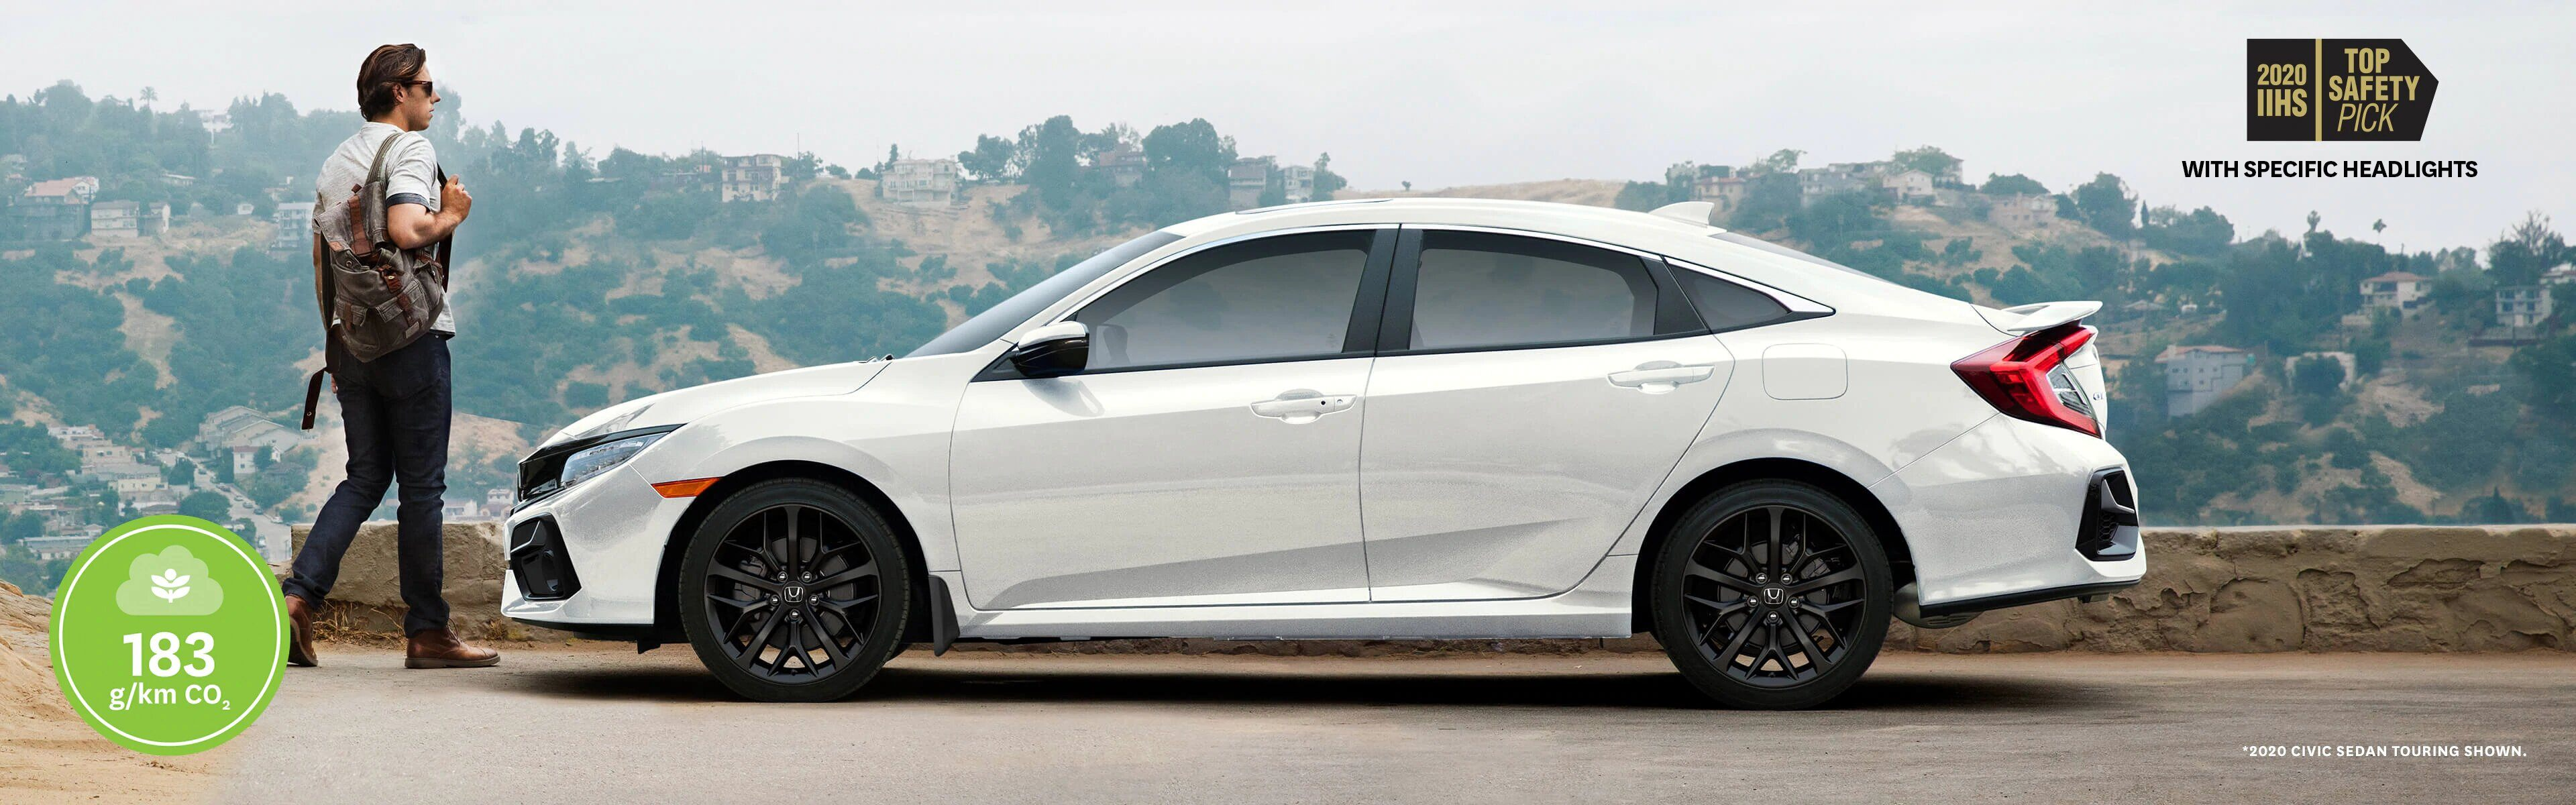 Side view of man walking around a 2020 Honda Civic Sedan Touring in white